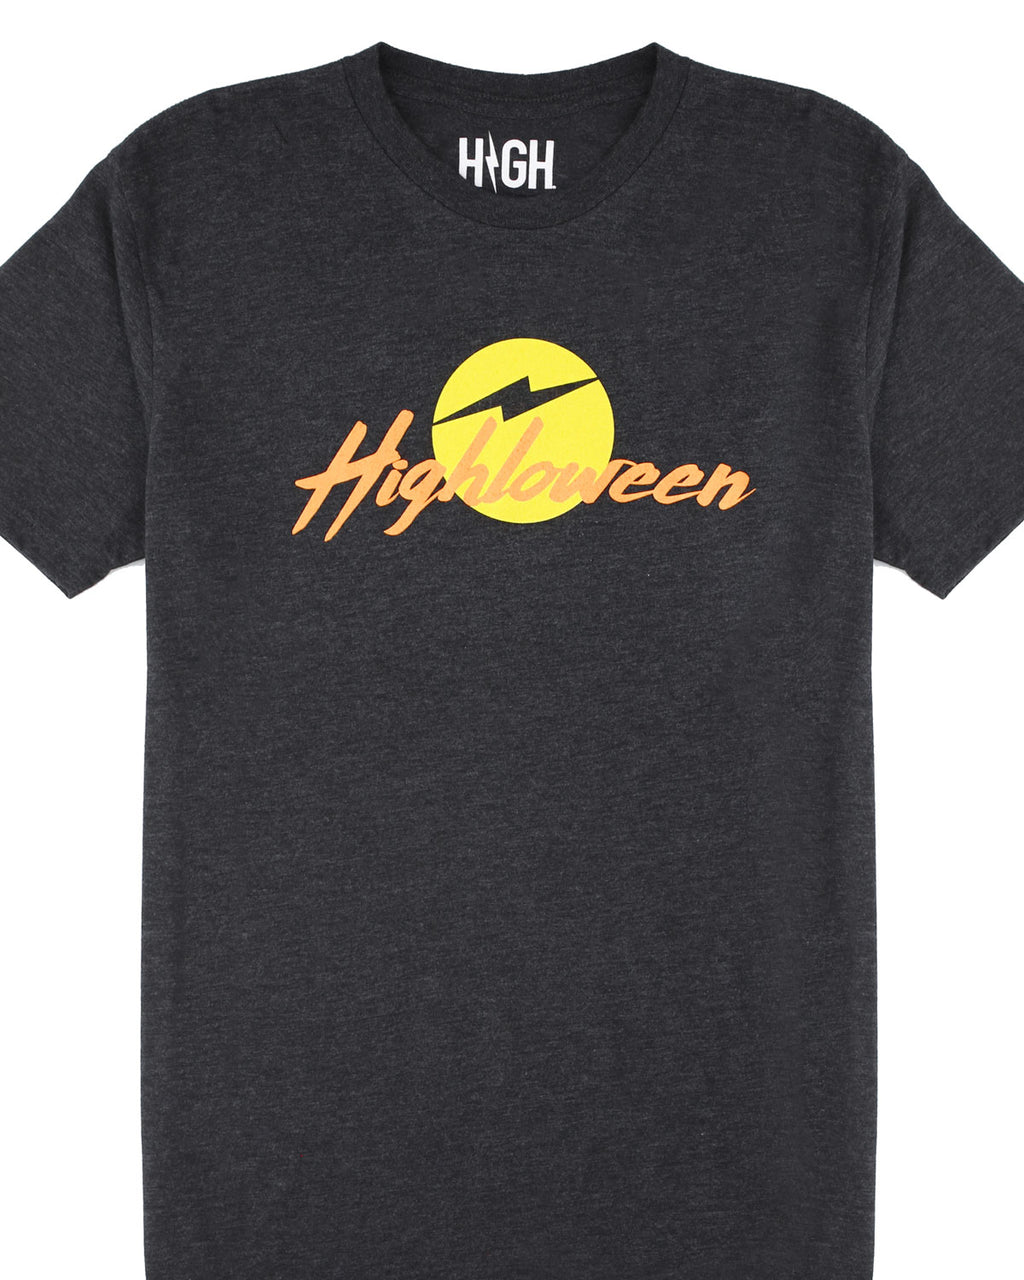 Highloween Tee